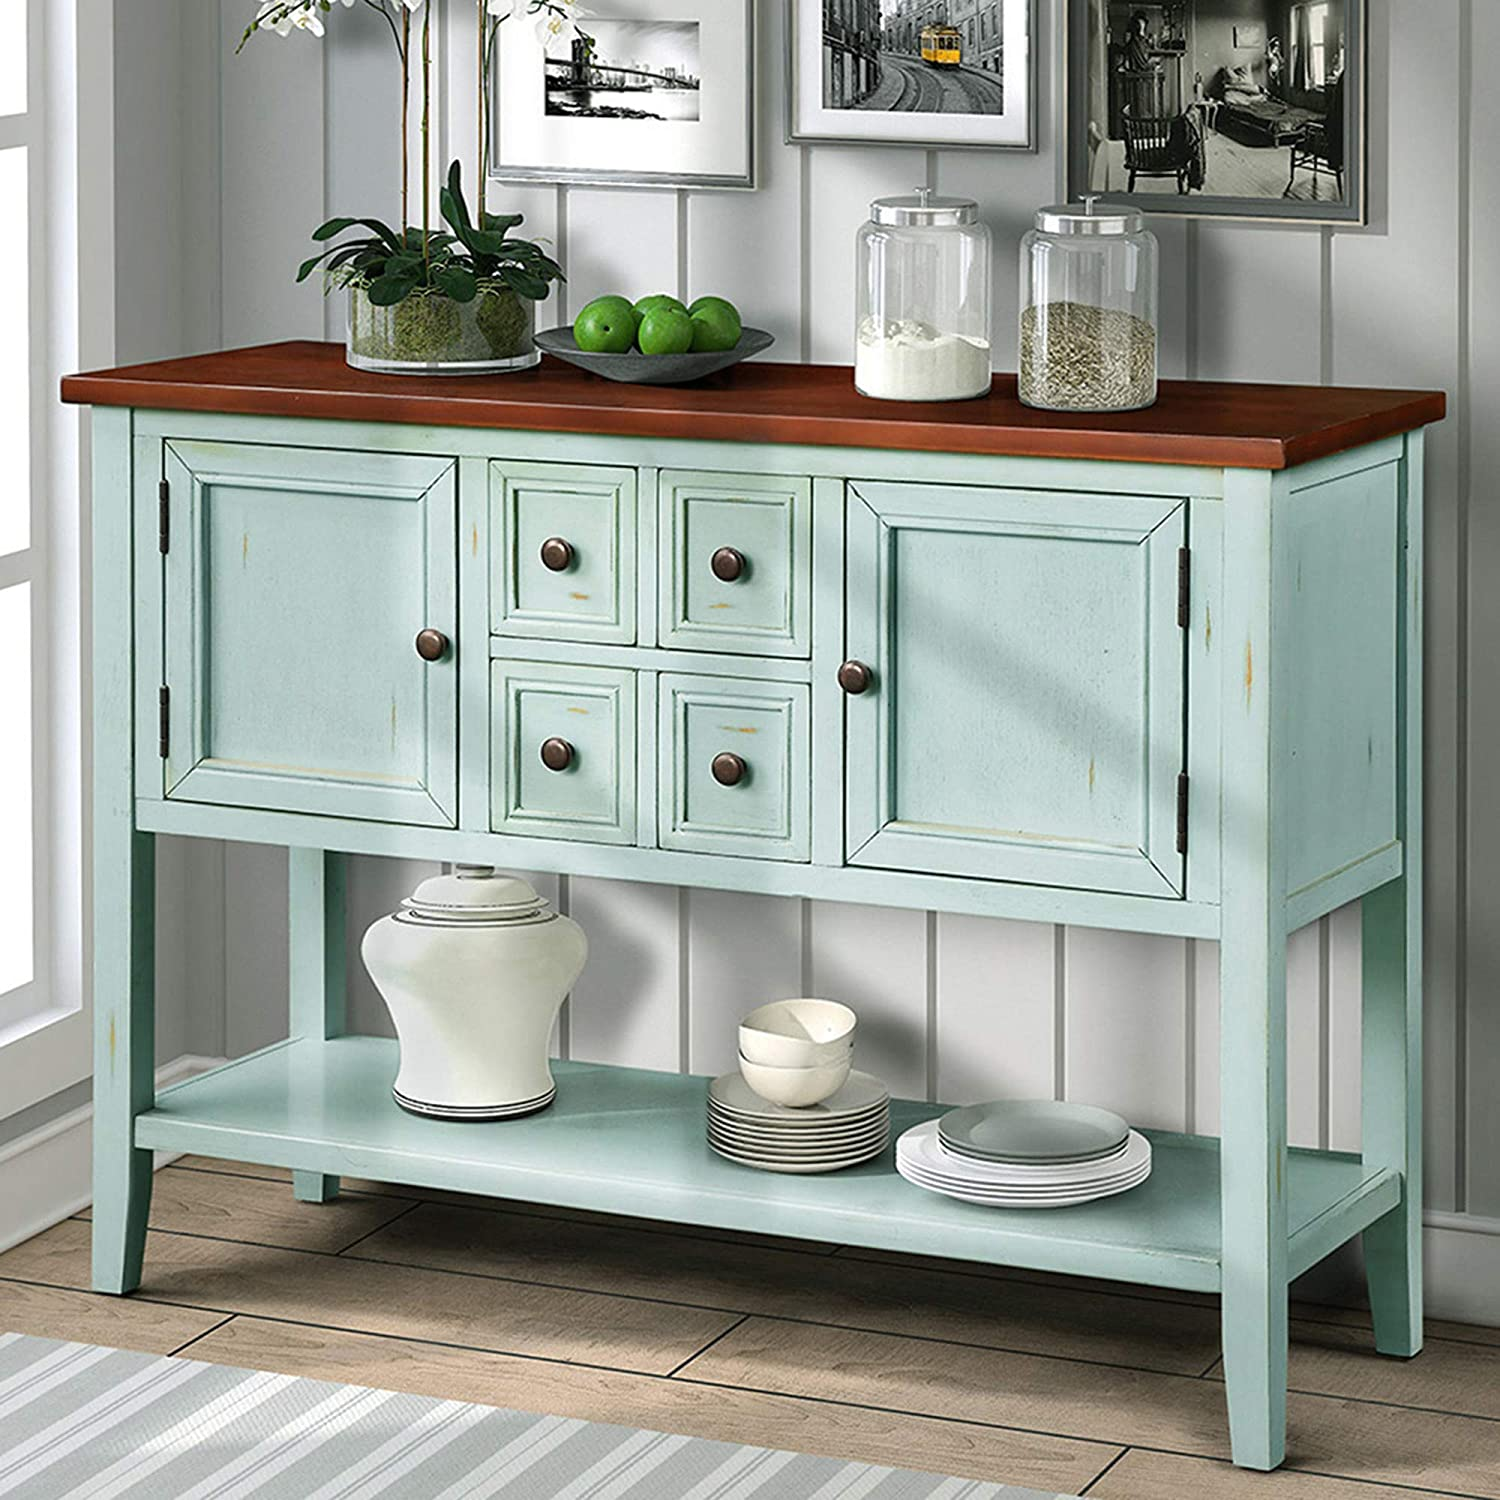 P PURLOVE Console Table Buffet Storage with Baltimore Mall Sofa High order Sideboard